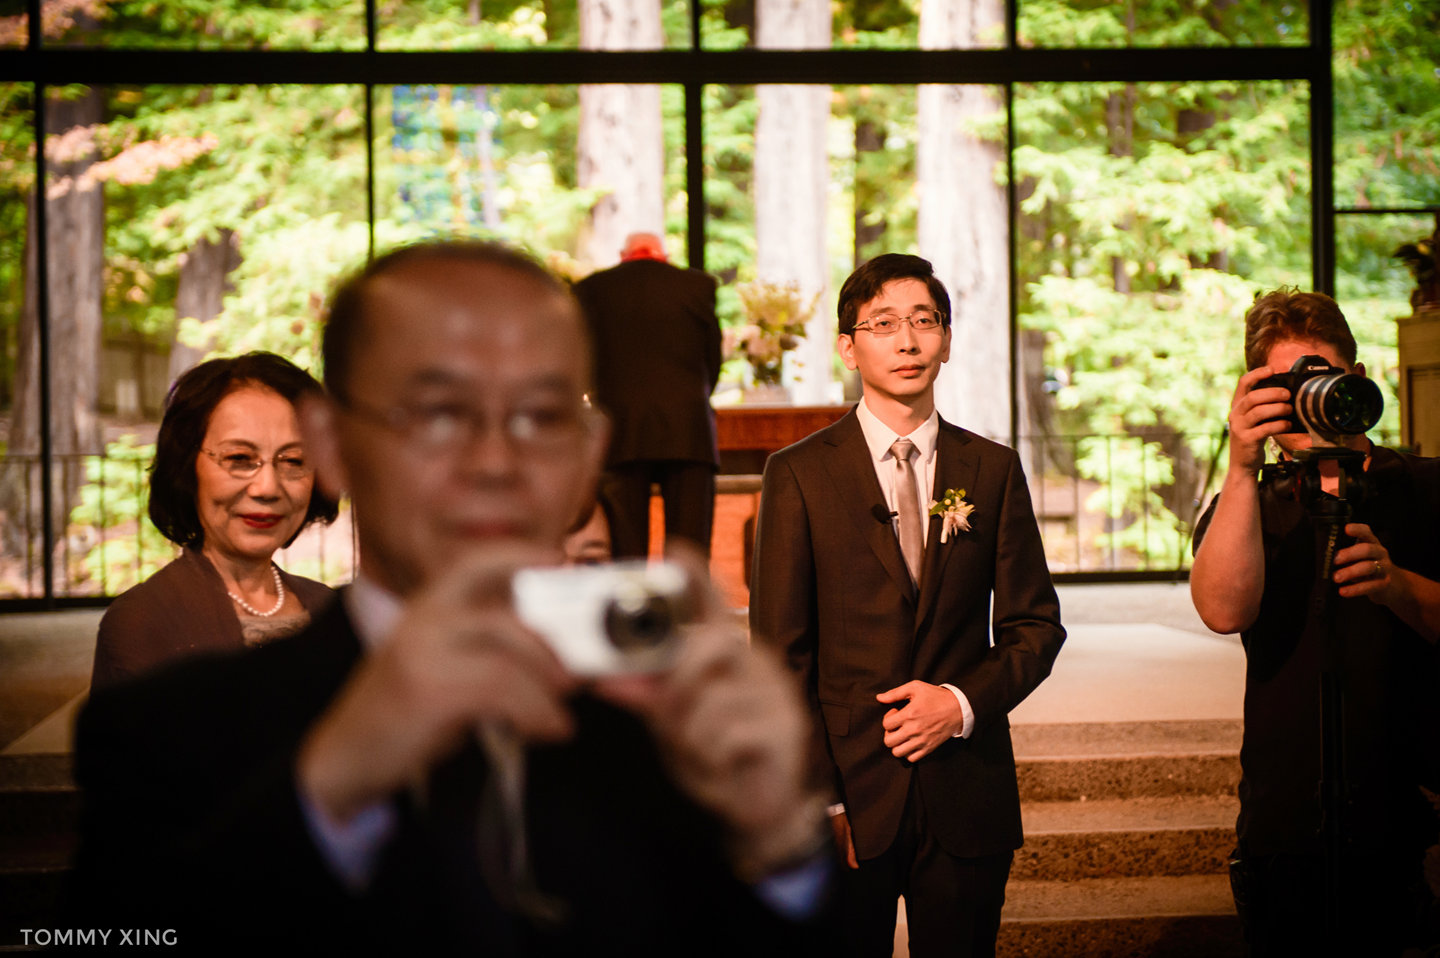 San Francisco Wedding Photography Valley Presbyterian Church WEDDING Tommy Xing Photography 洛杉矶旧金山婚礼婚纱照摄影师064.jpg